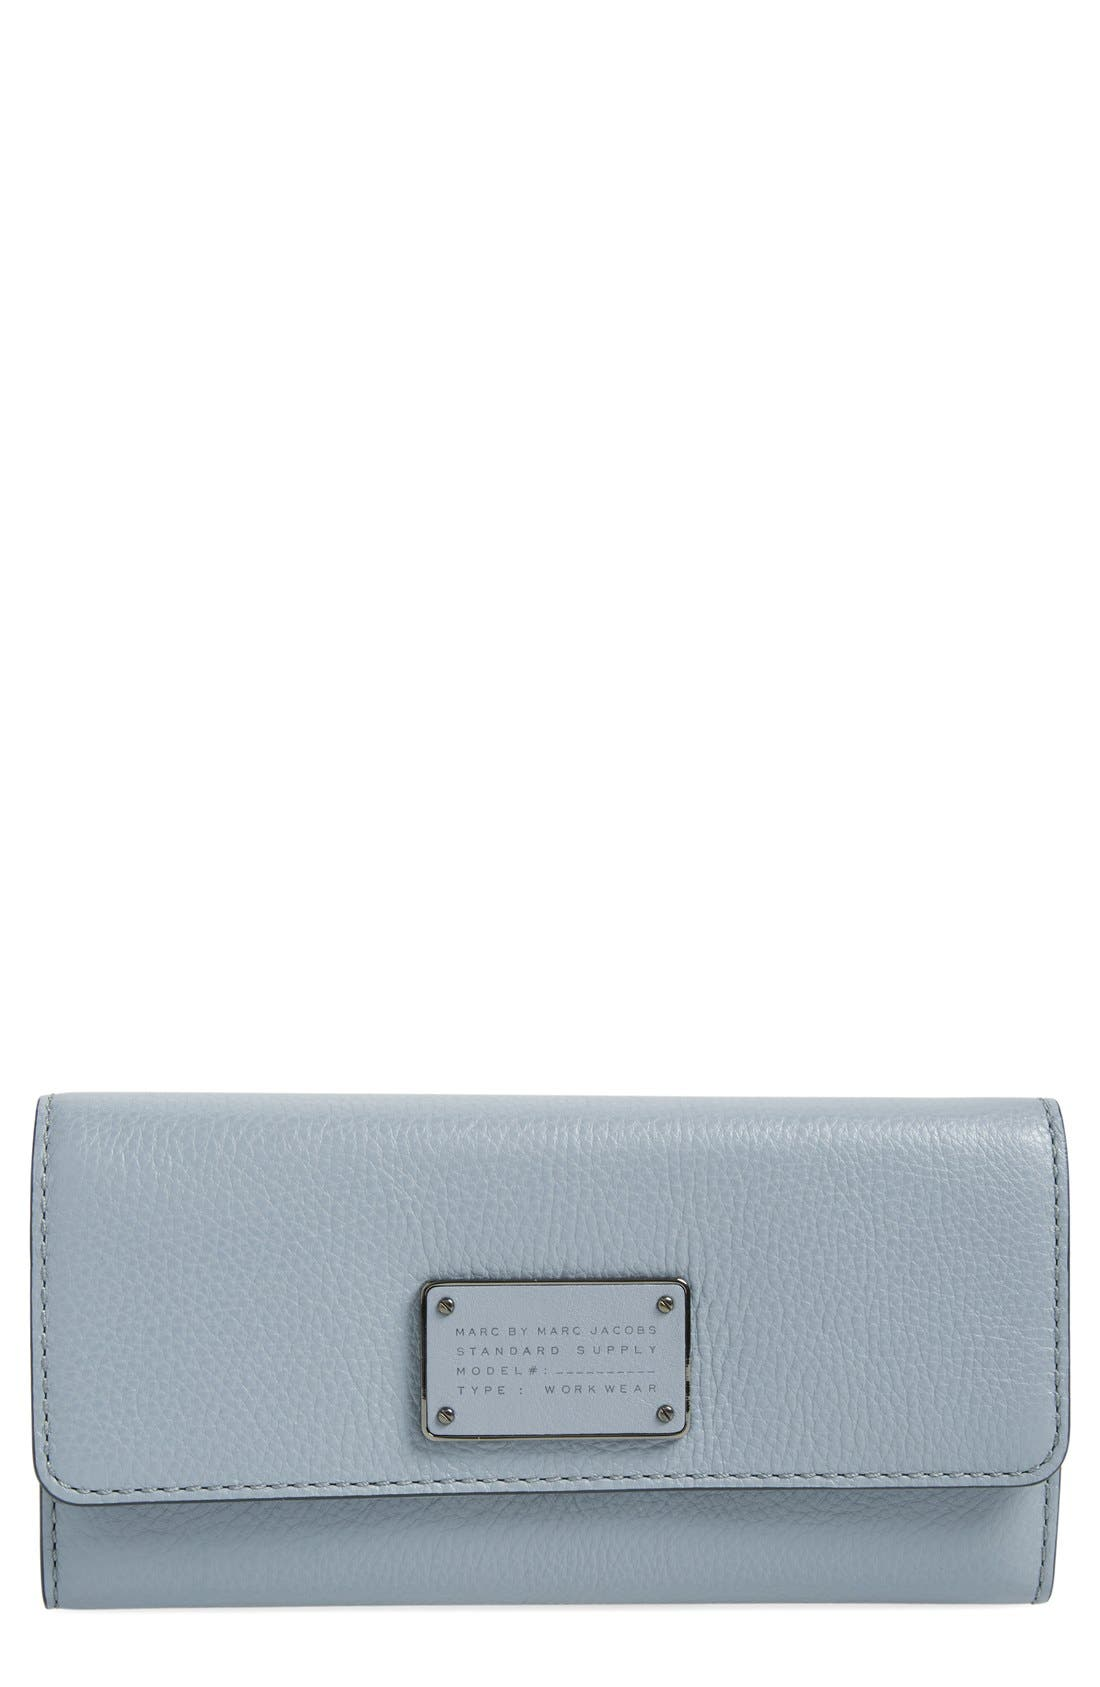 Alternate Image 1 Selected - MARC BY MARC JACOBS Trifold Flap Wallet